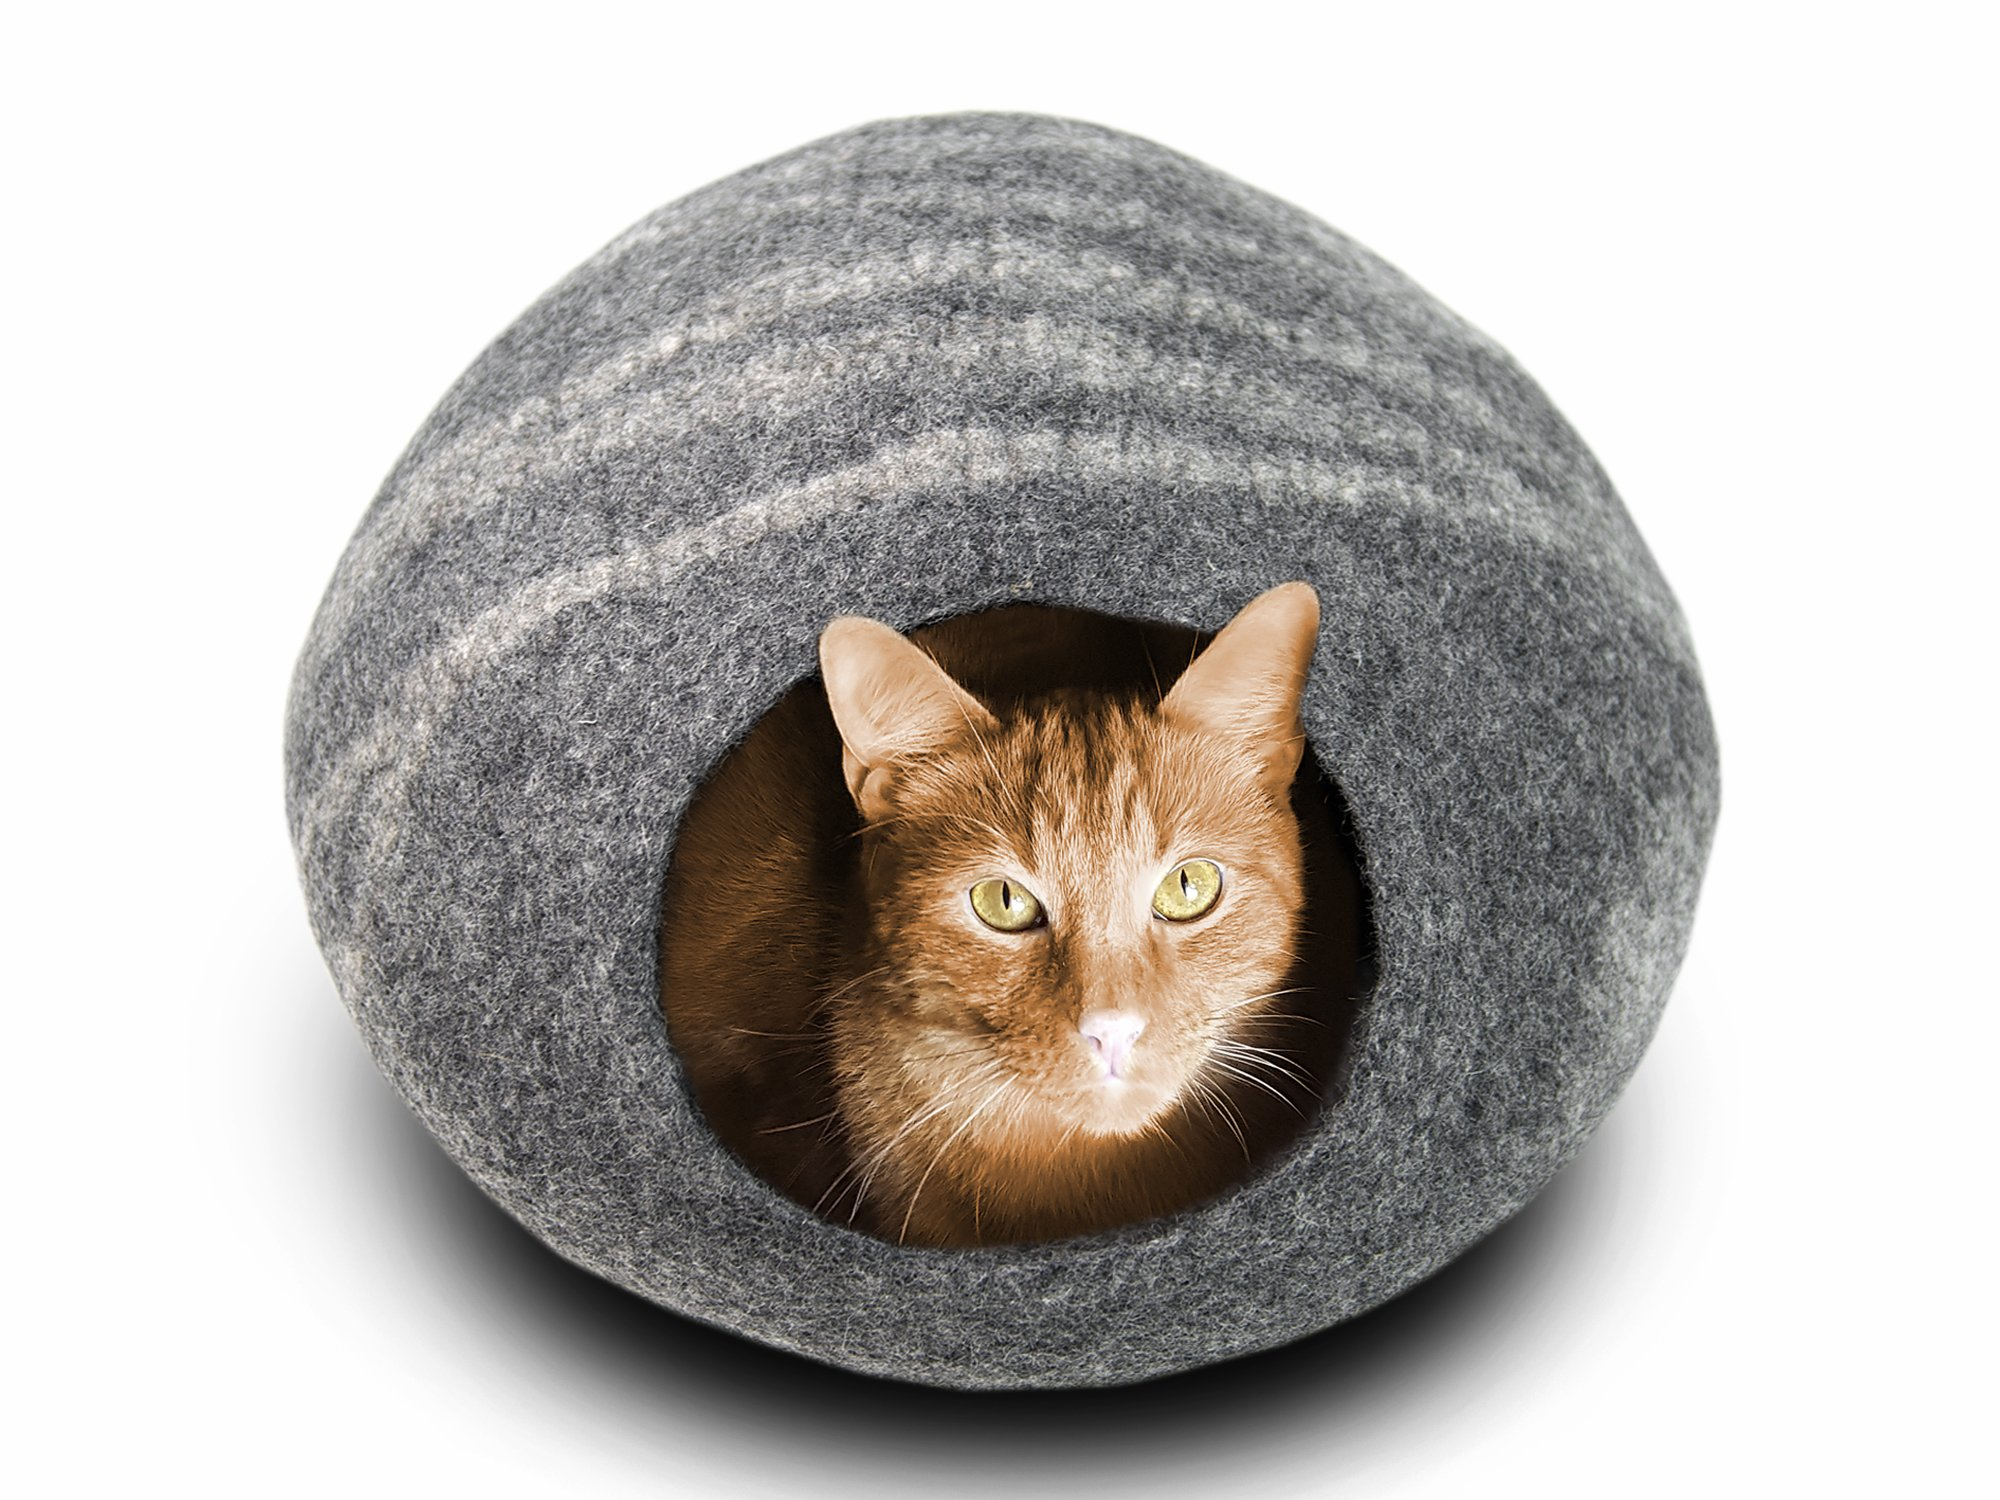 MEOWFIA Premium Felt Cat Cave Bed (Large) - Eco-Friendly 100% Merino Wool Cat Bed - Handmade - Soft and Comfy Beds for Large Cats and Kittens(Dark Grey) by MEOWFIA (Image #3)